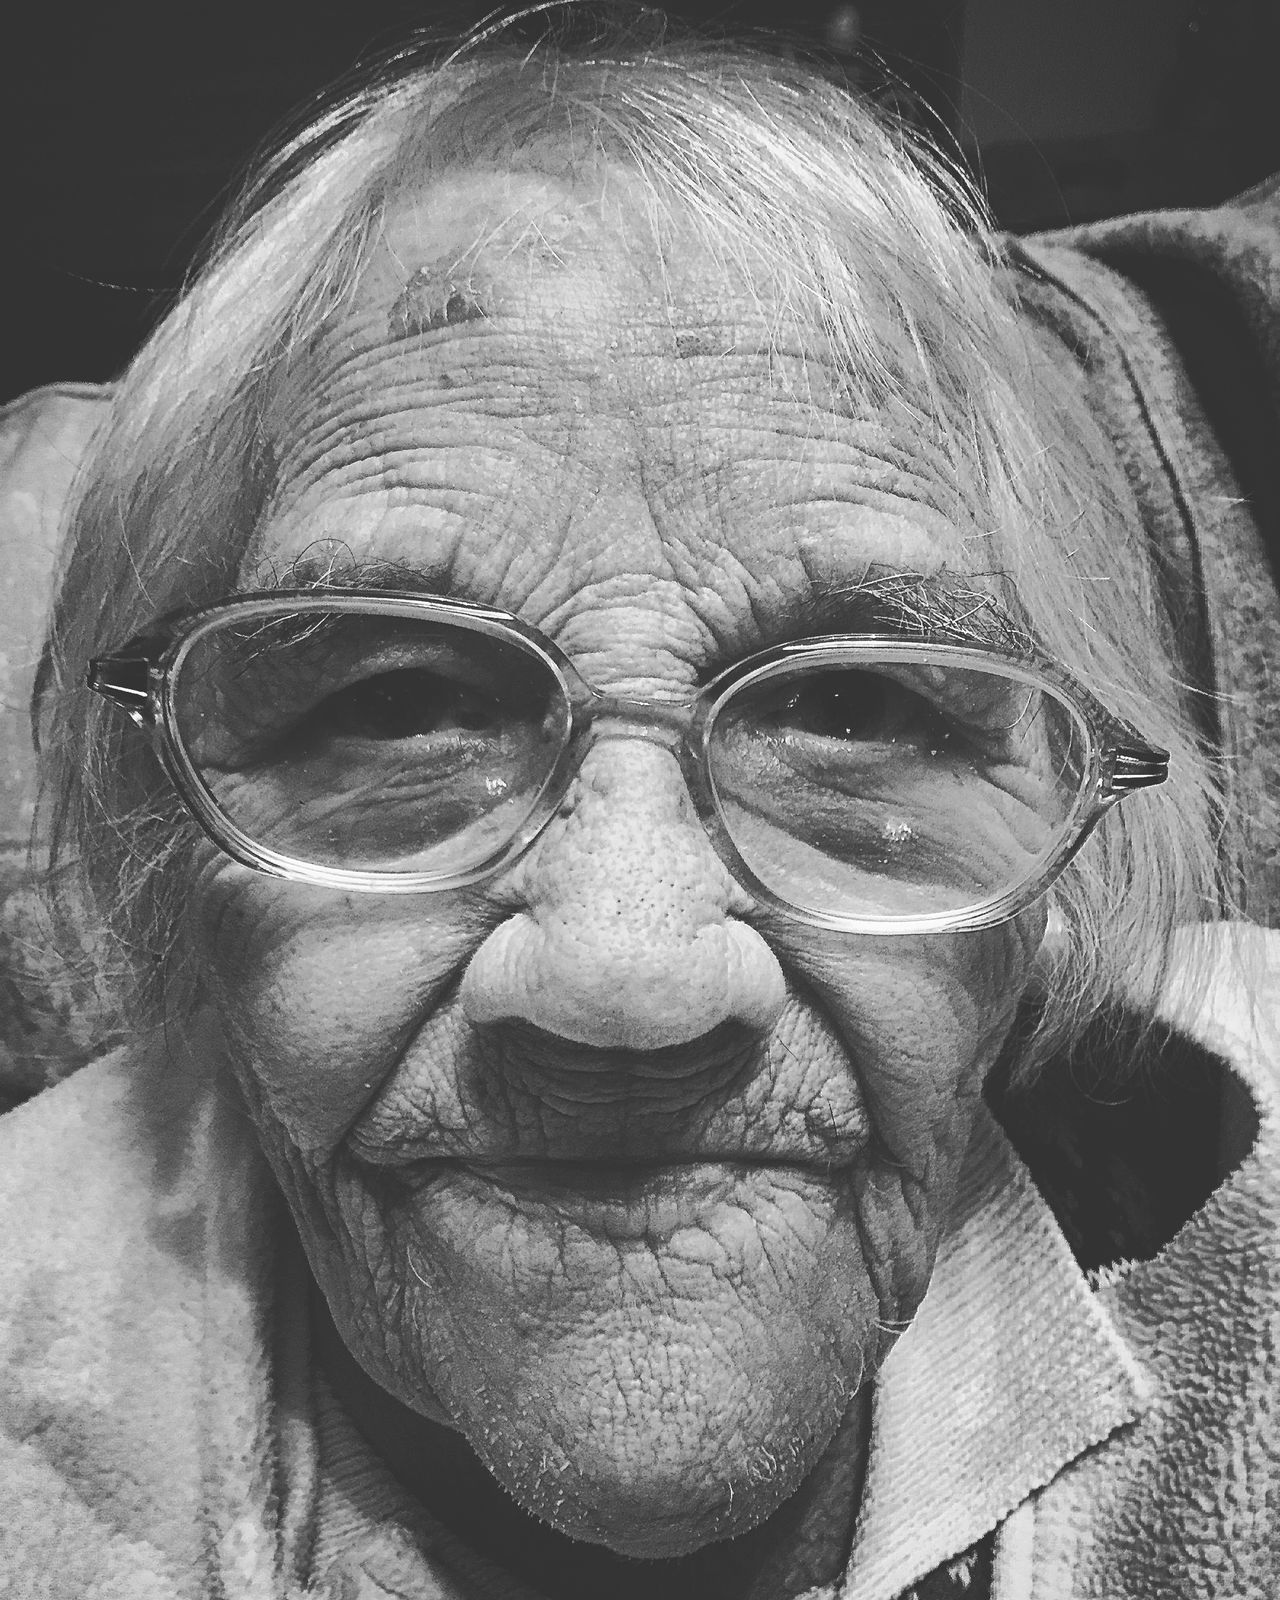 Grandma Grandmother Old Age 90s Wise Wrinkles Nana IPSWebsite IPhoneography IPhone Photography Portrait Old Lady The Portraitist - 2016 EyeEm Awards